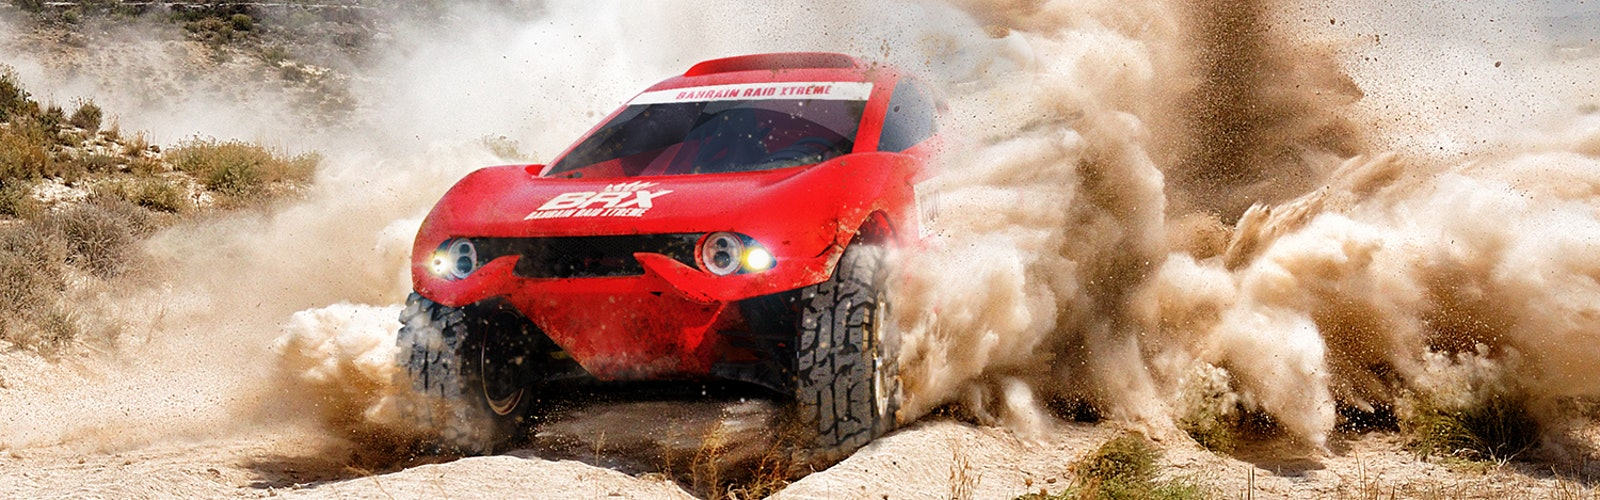 brx_is_a_new_team_founded_by_prodrive_and_the_kingdom_of_bahrain